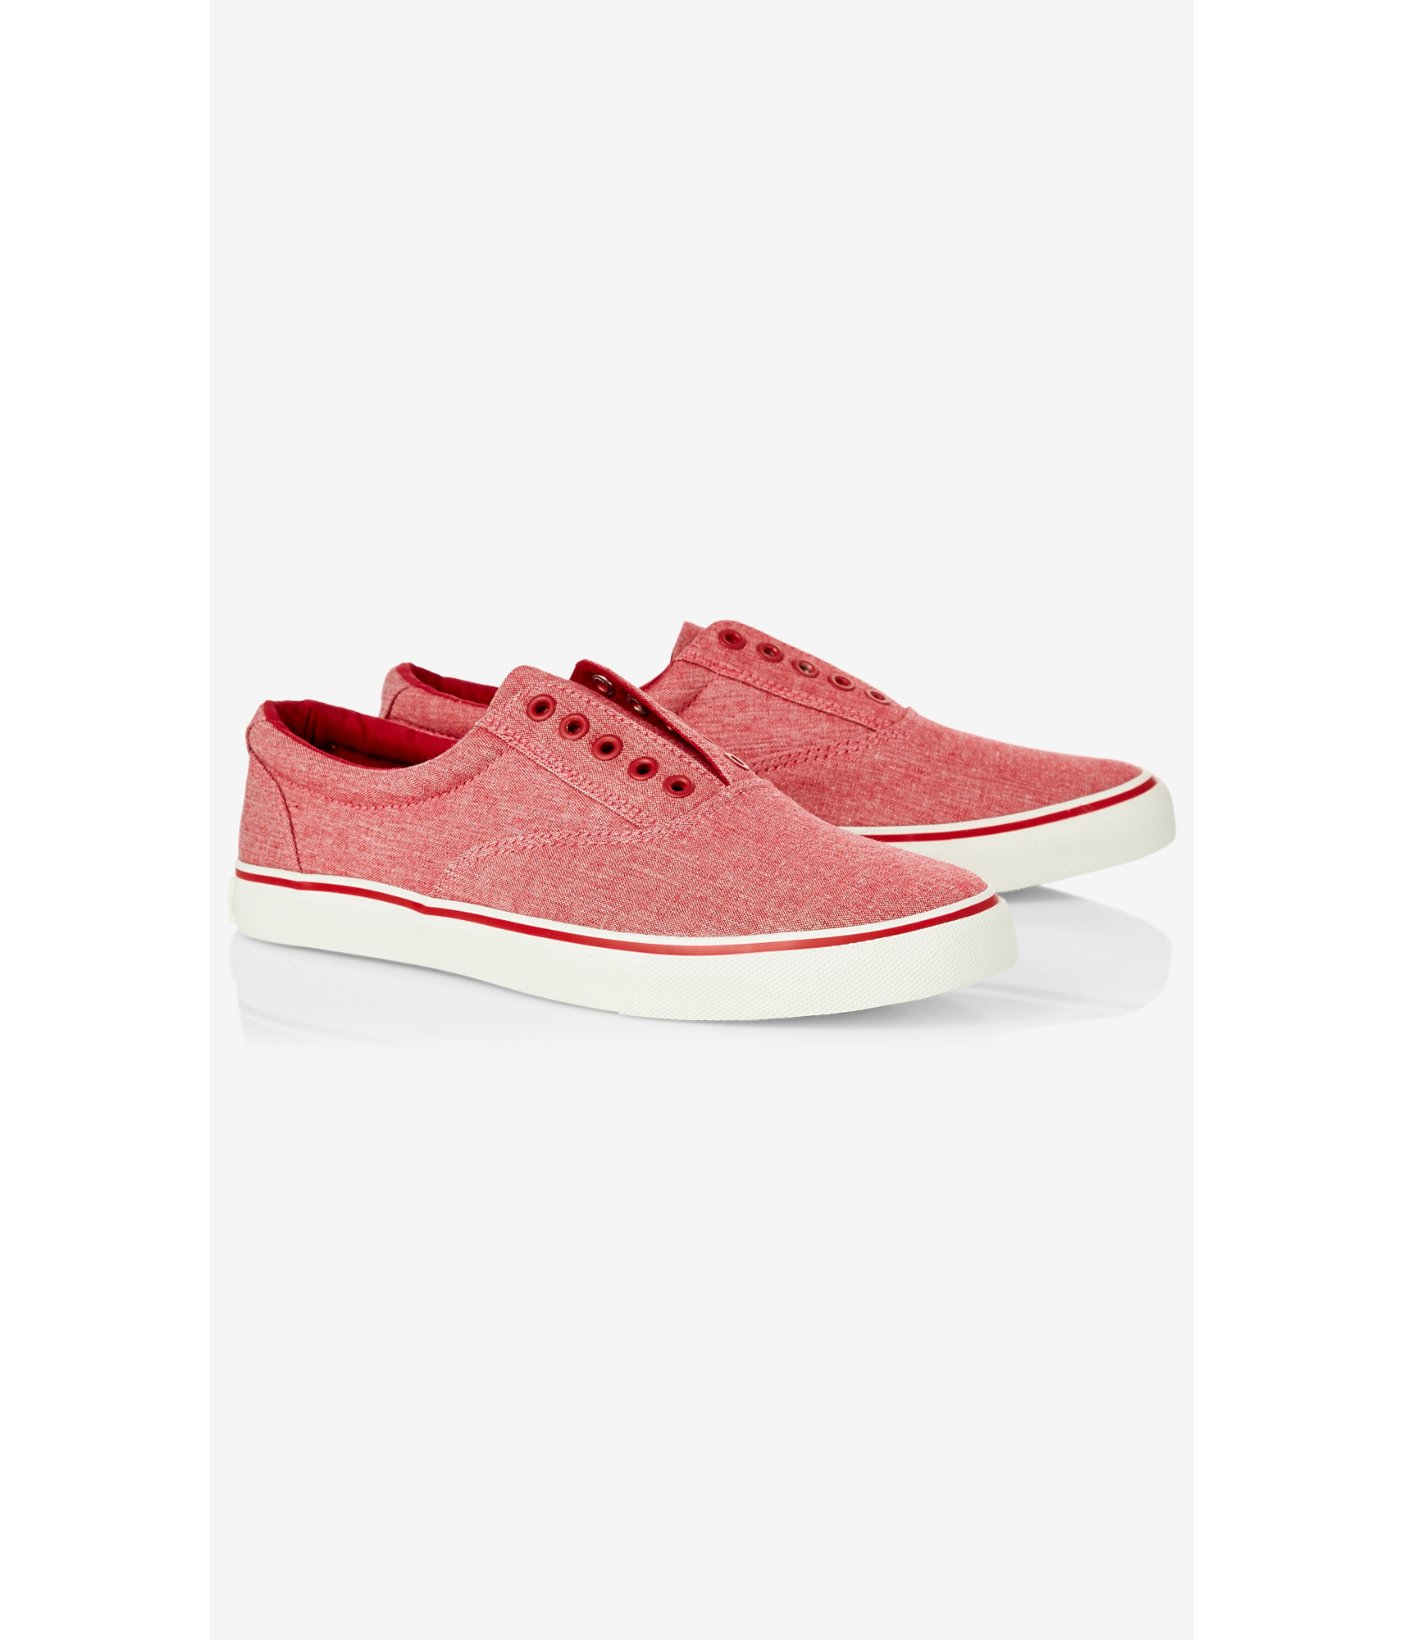 express low top laceless canvas sneaker in for